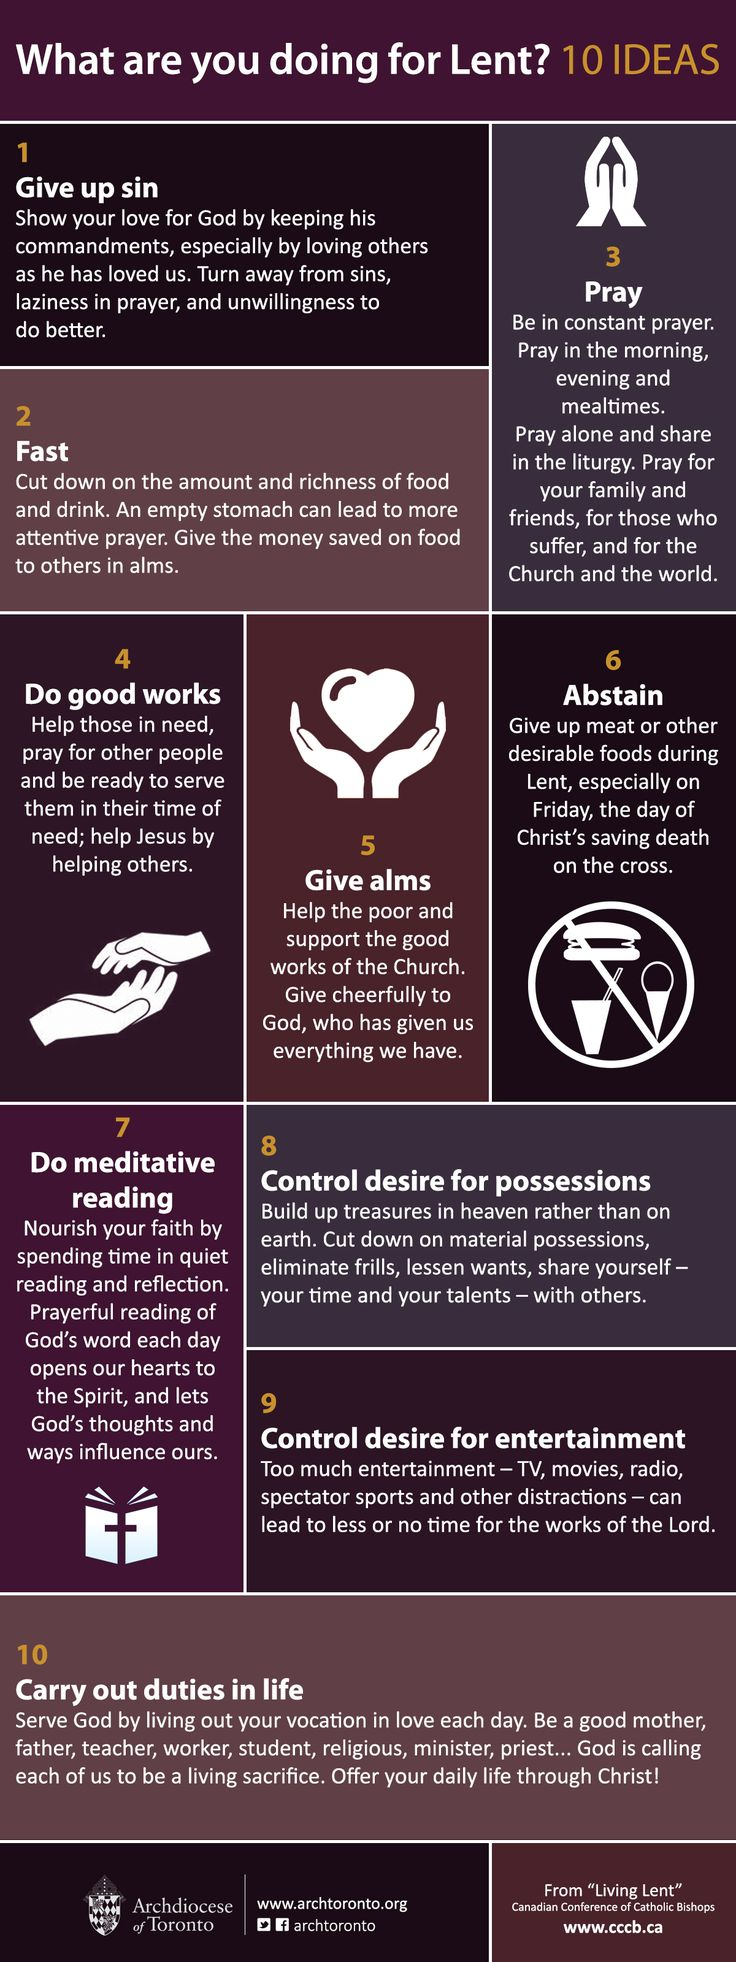 17 Best Ideas About Catholic Lent On Pinterest Lent